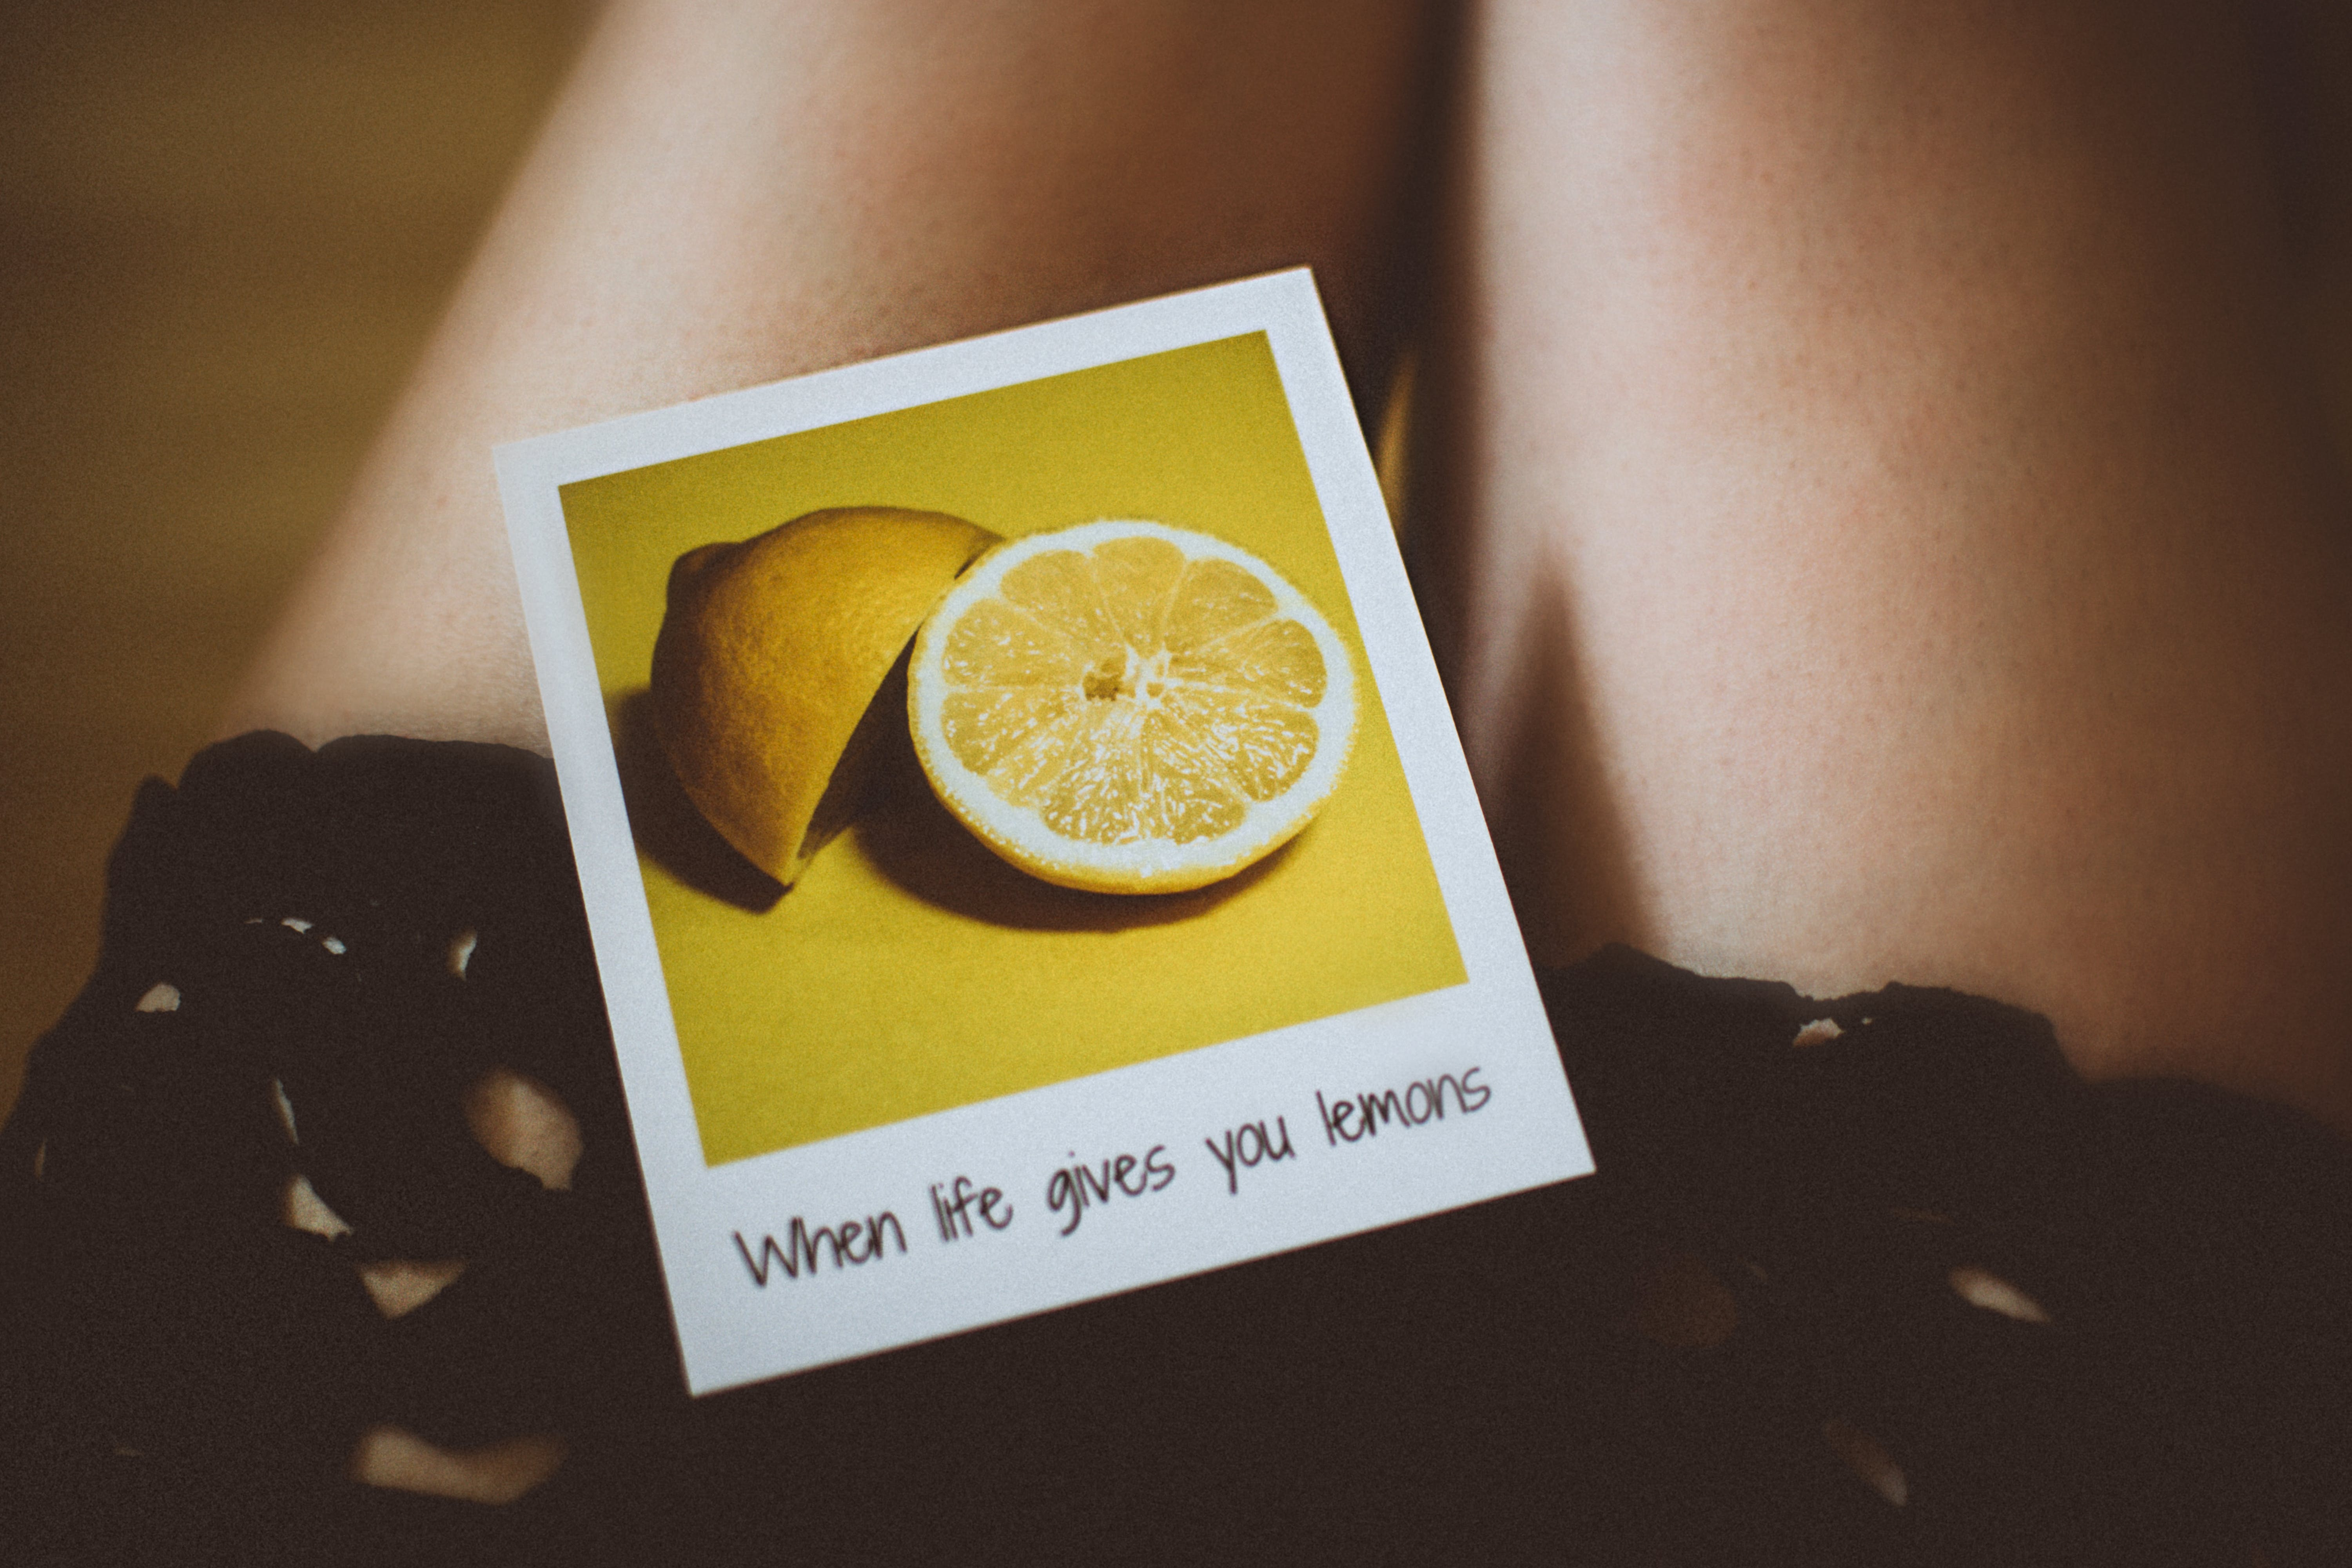 Lemon Photo on Person's Thigh